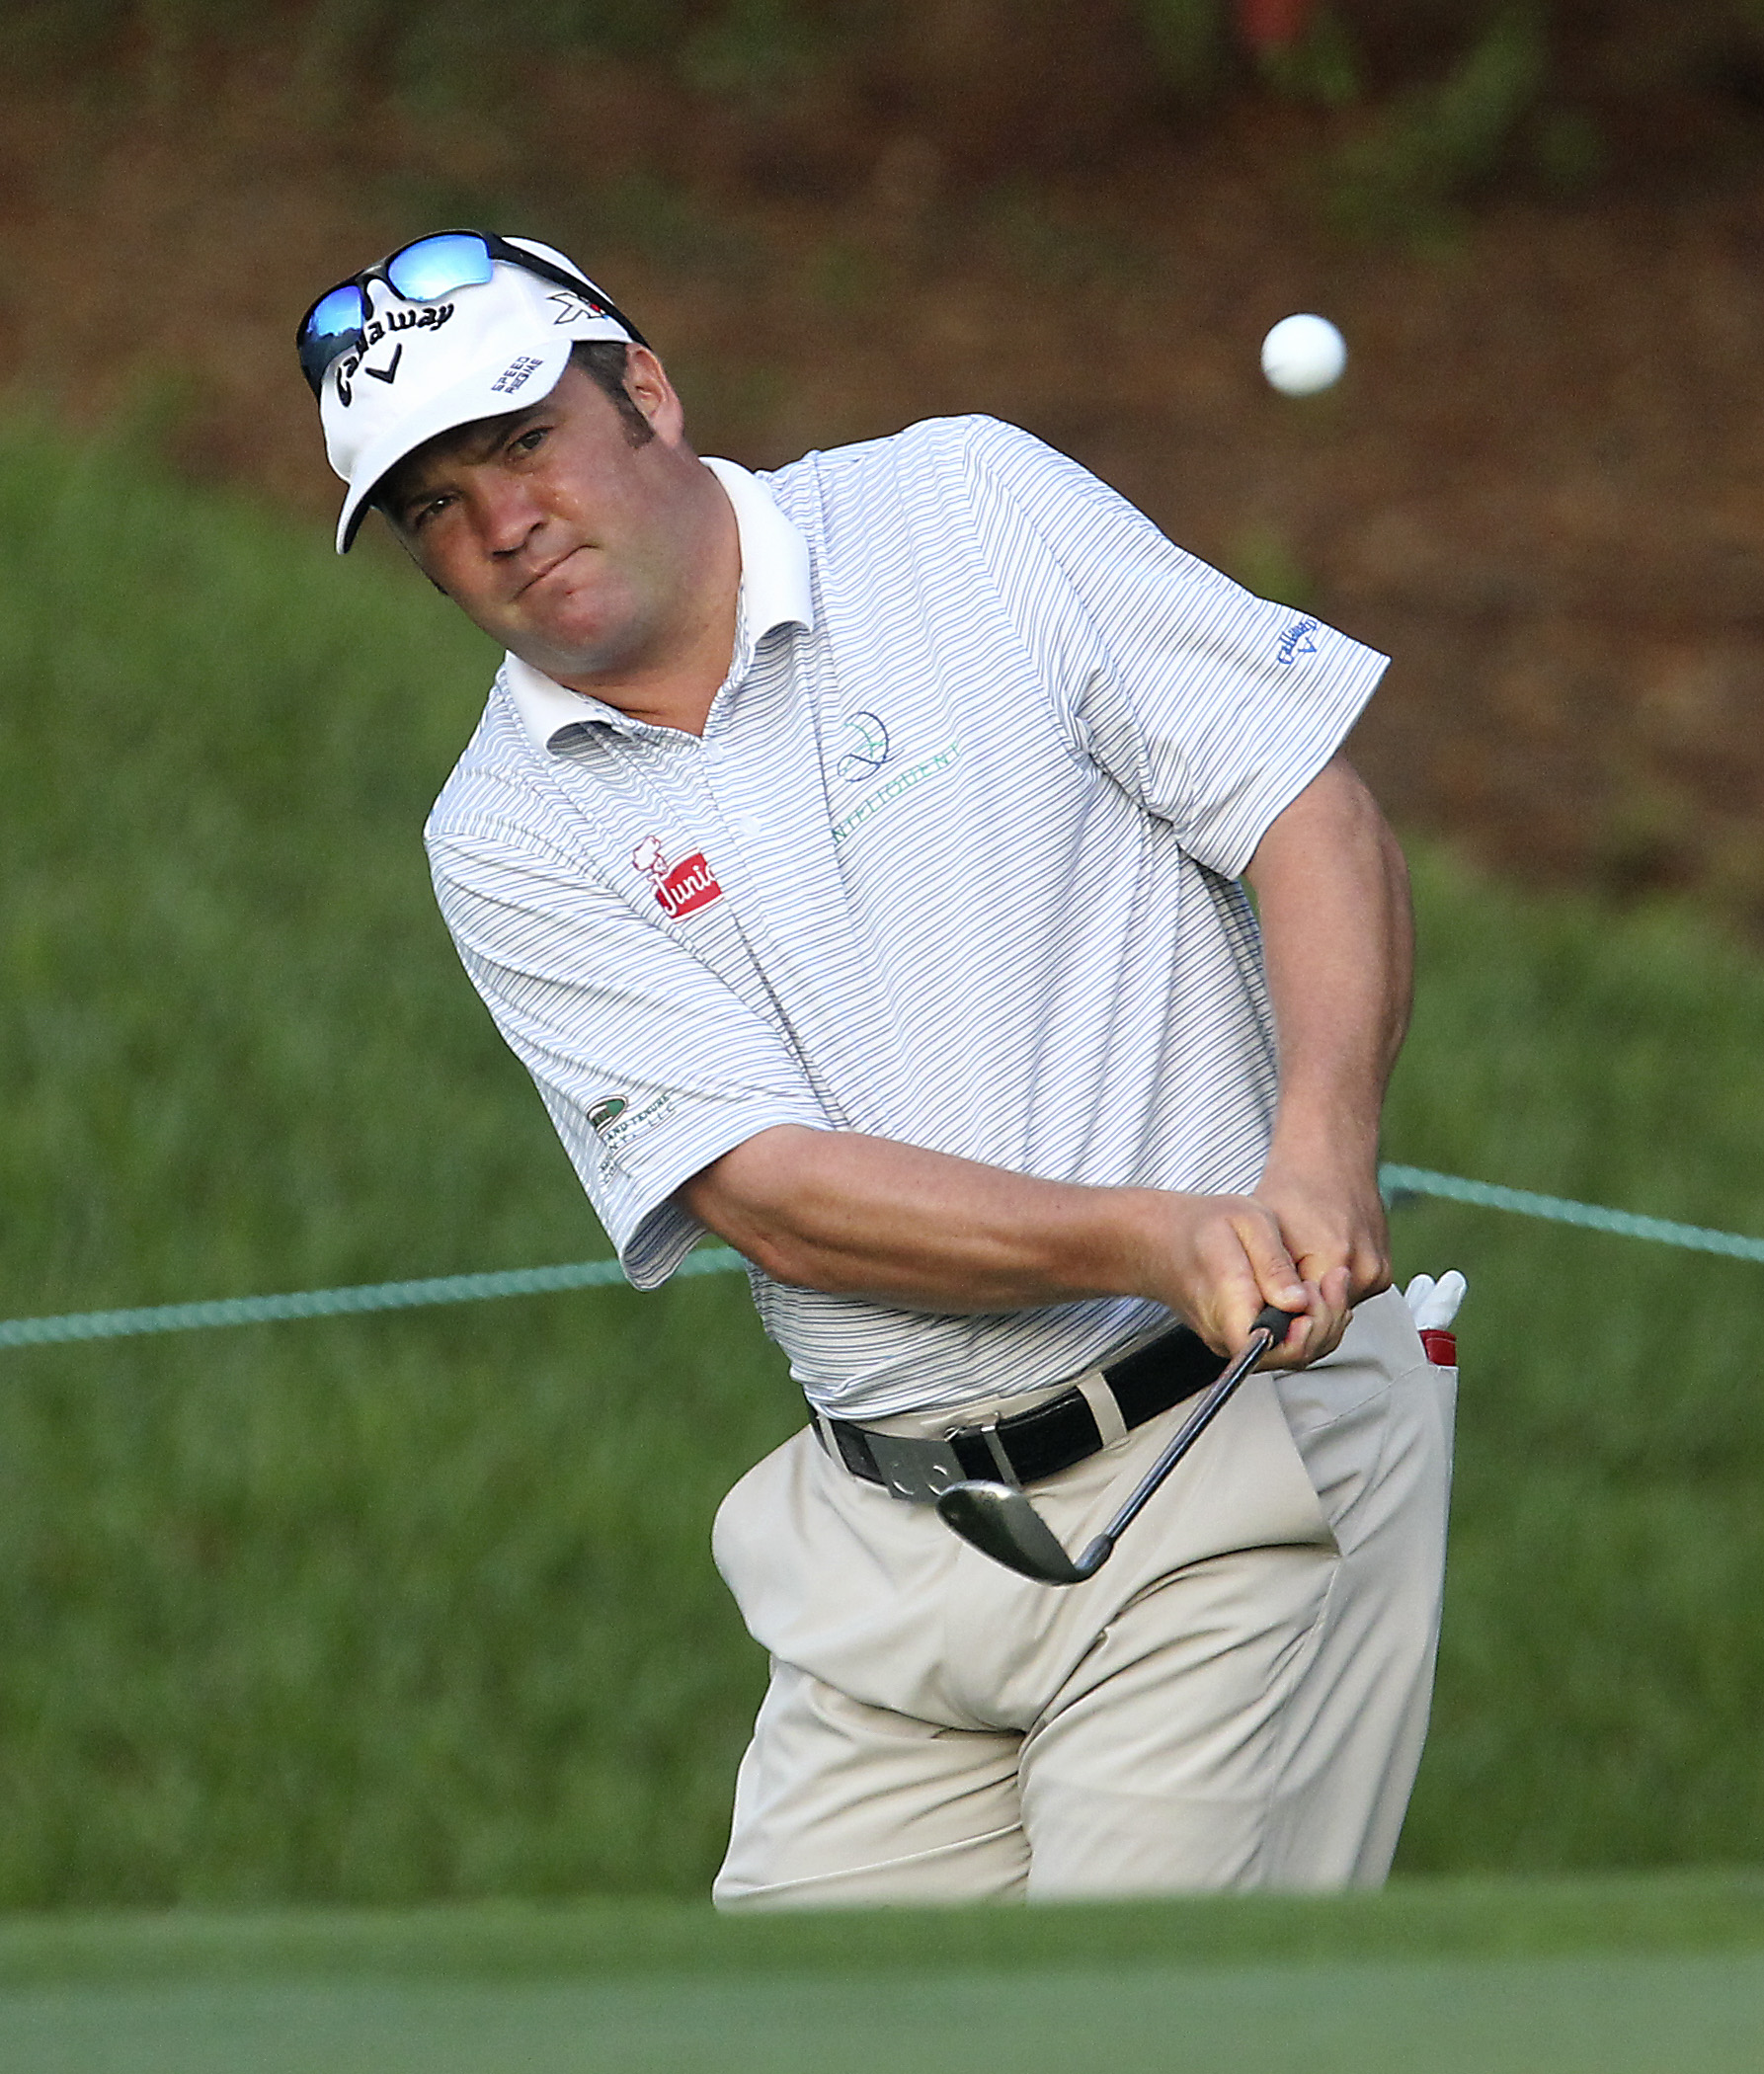 Andrew Svoboda chips onto the second green during the first round of the Arnold Palmer Invitational golf tournament in Orlando, Fla., Thursday, March 19, 2015.(AP Photo/Reinhold Matay)